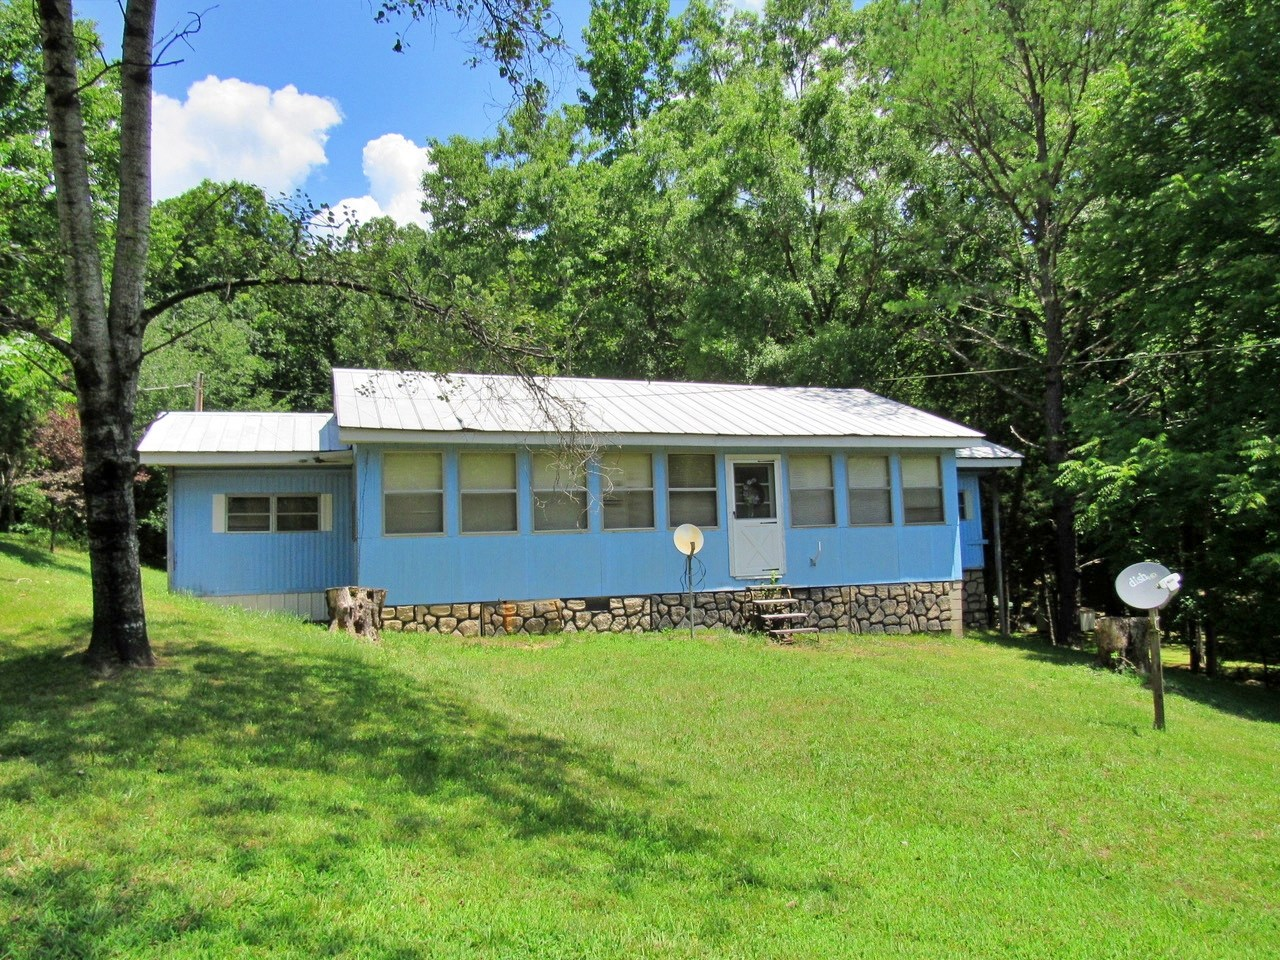 TN River Camp 11152 Crooked Creek Rd Lobelville Tn $49,900